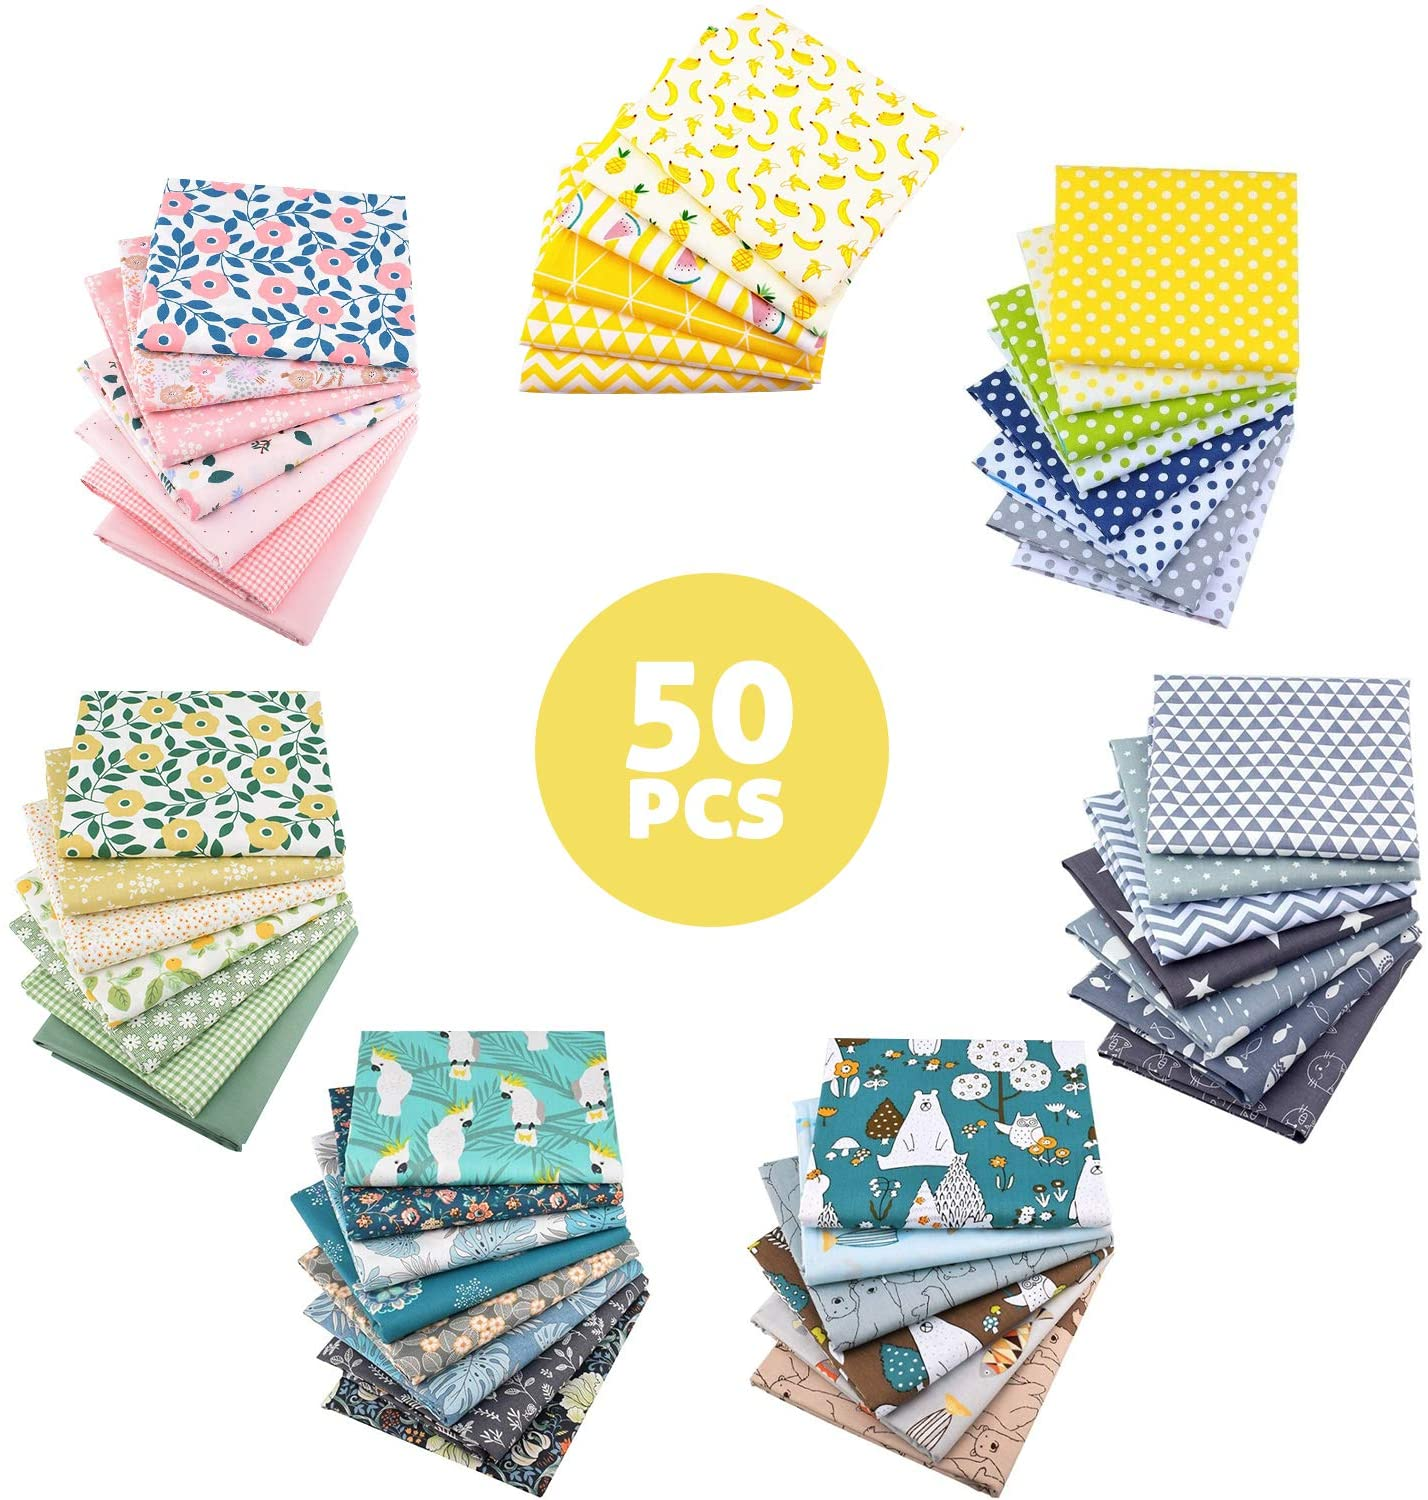 AUBLISS 50PCS QUILTING COTTON CRAFT FABRIC BUNDLE (100% COTTON - 9.8IN X 9.8IN | 25CM X 25CM) PRE-CUT SQUARES SHEETS PRINTED FLORAL SEWING SUPPLIES FOR PATCHWORK SEWING DIY CRAFTING QUILTING